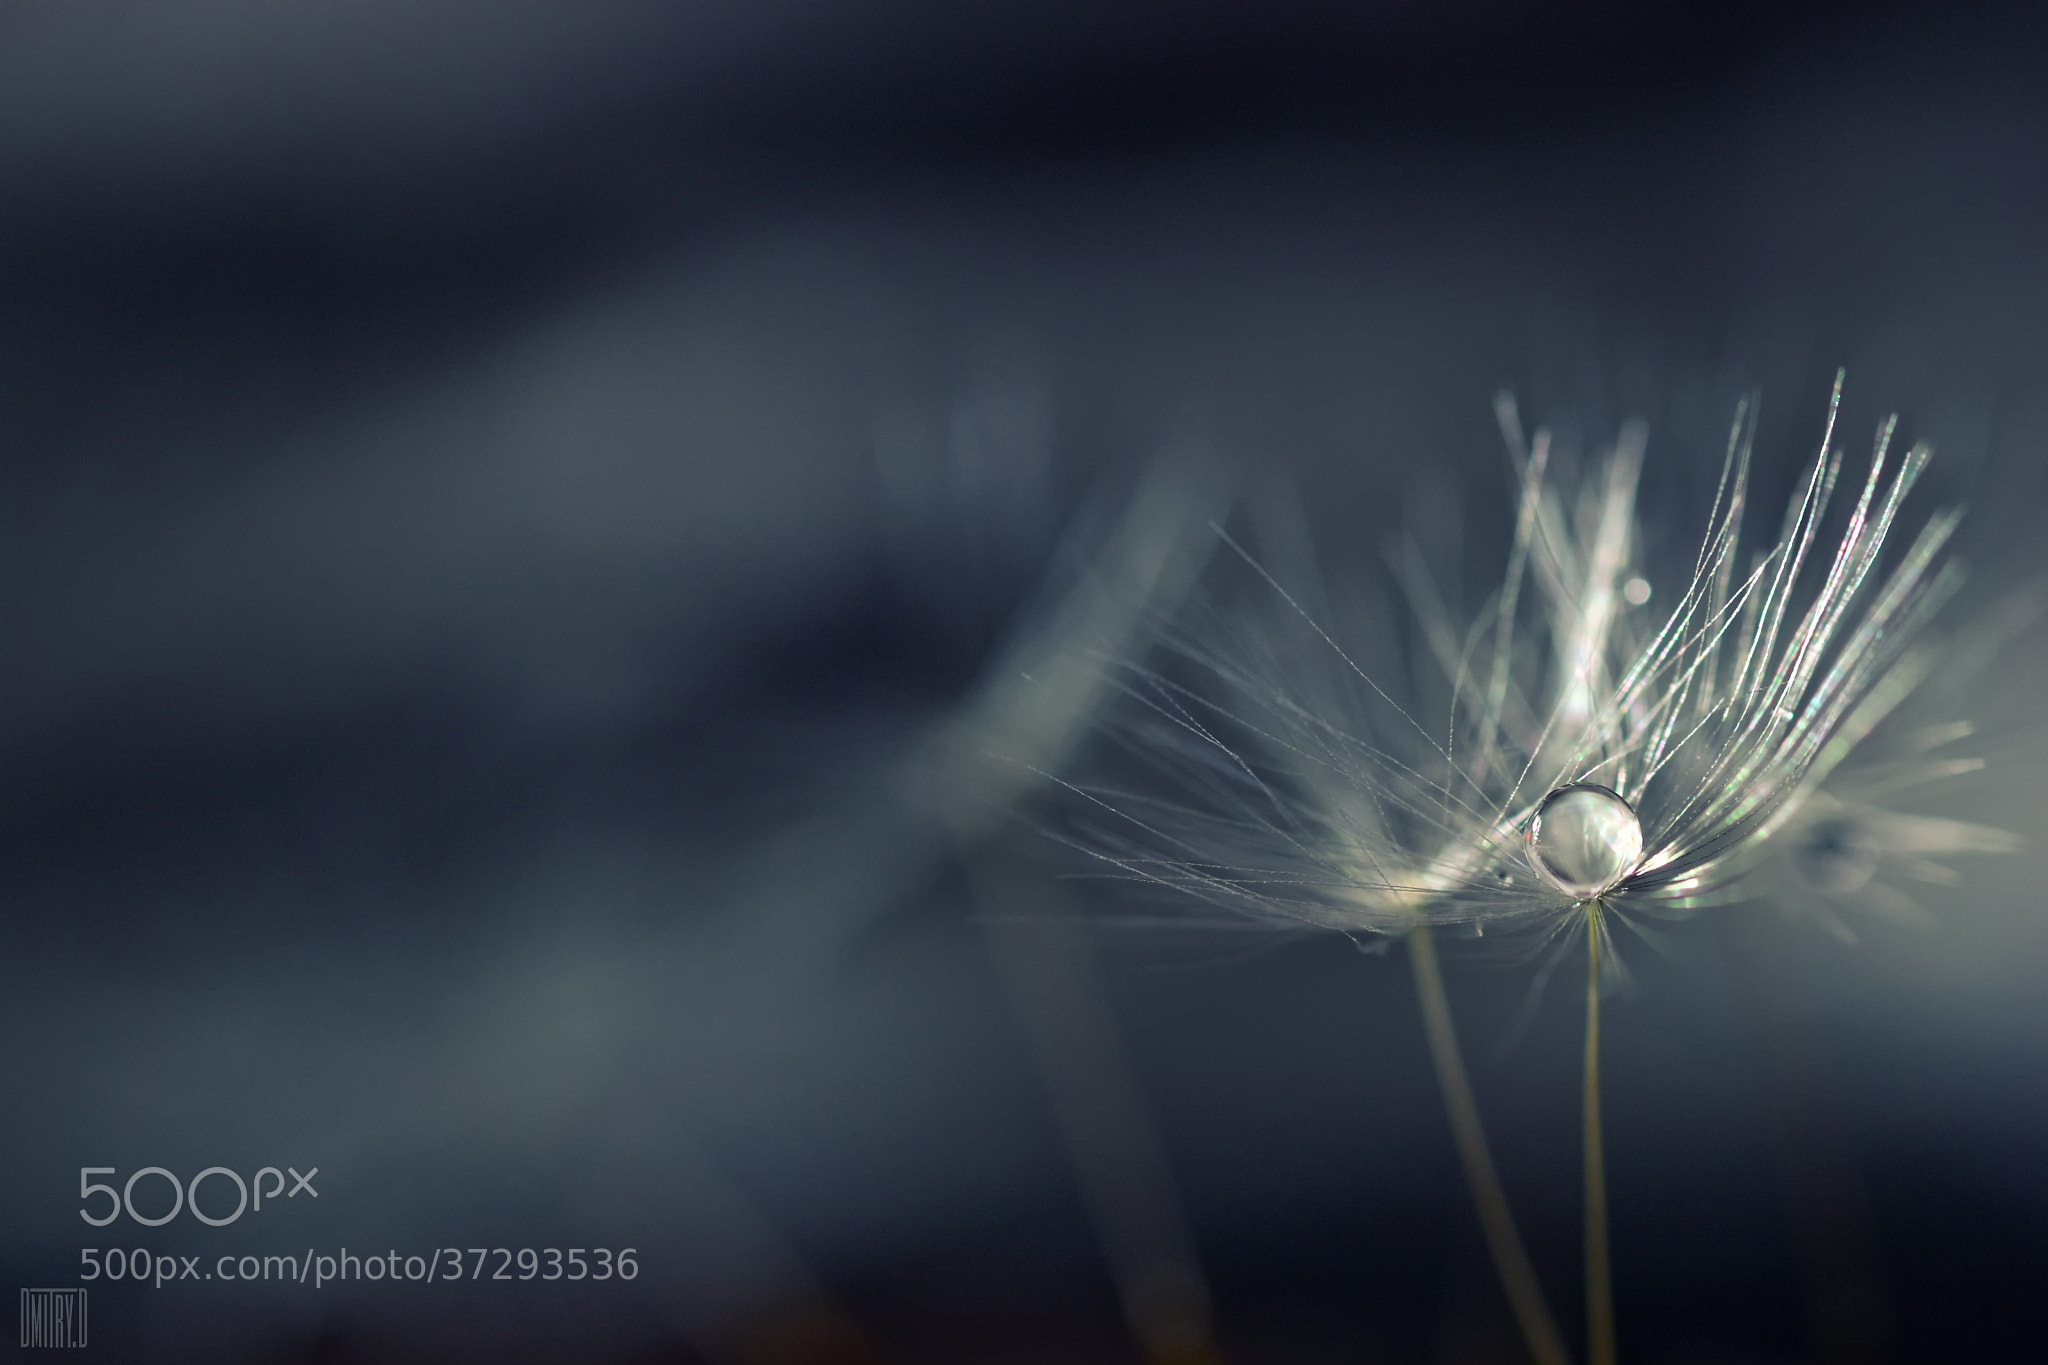 Photograph Stories of drops by Dmitry Doronin on 500px